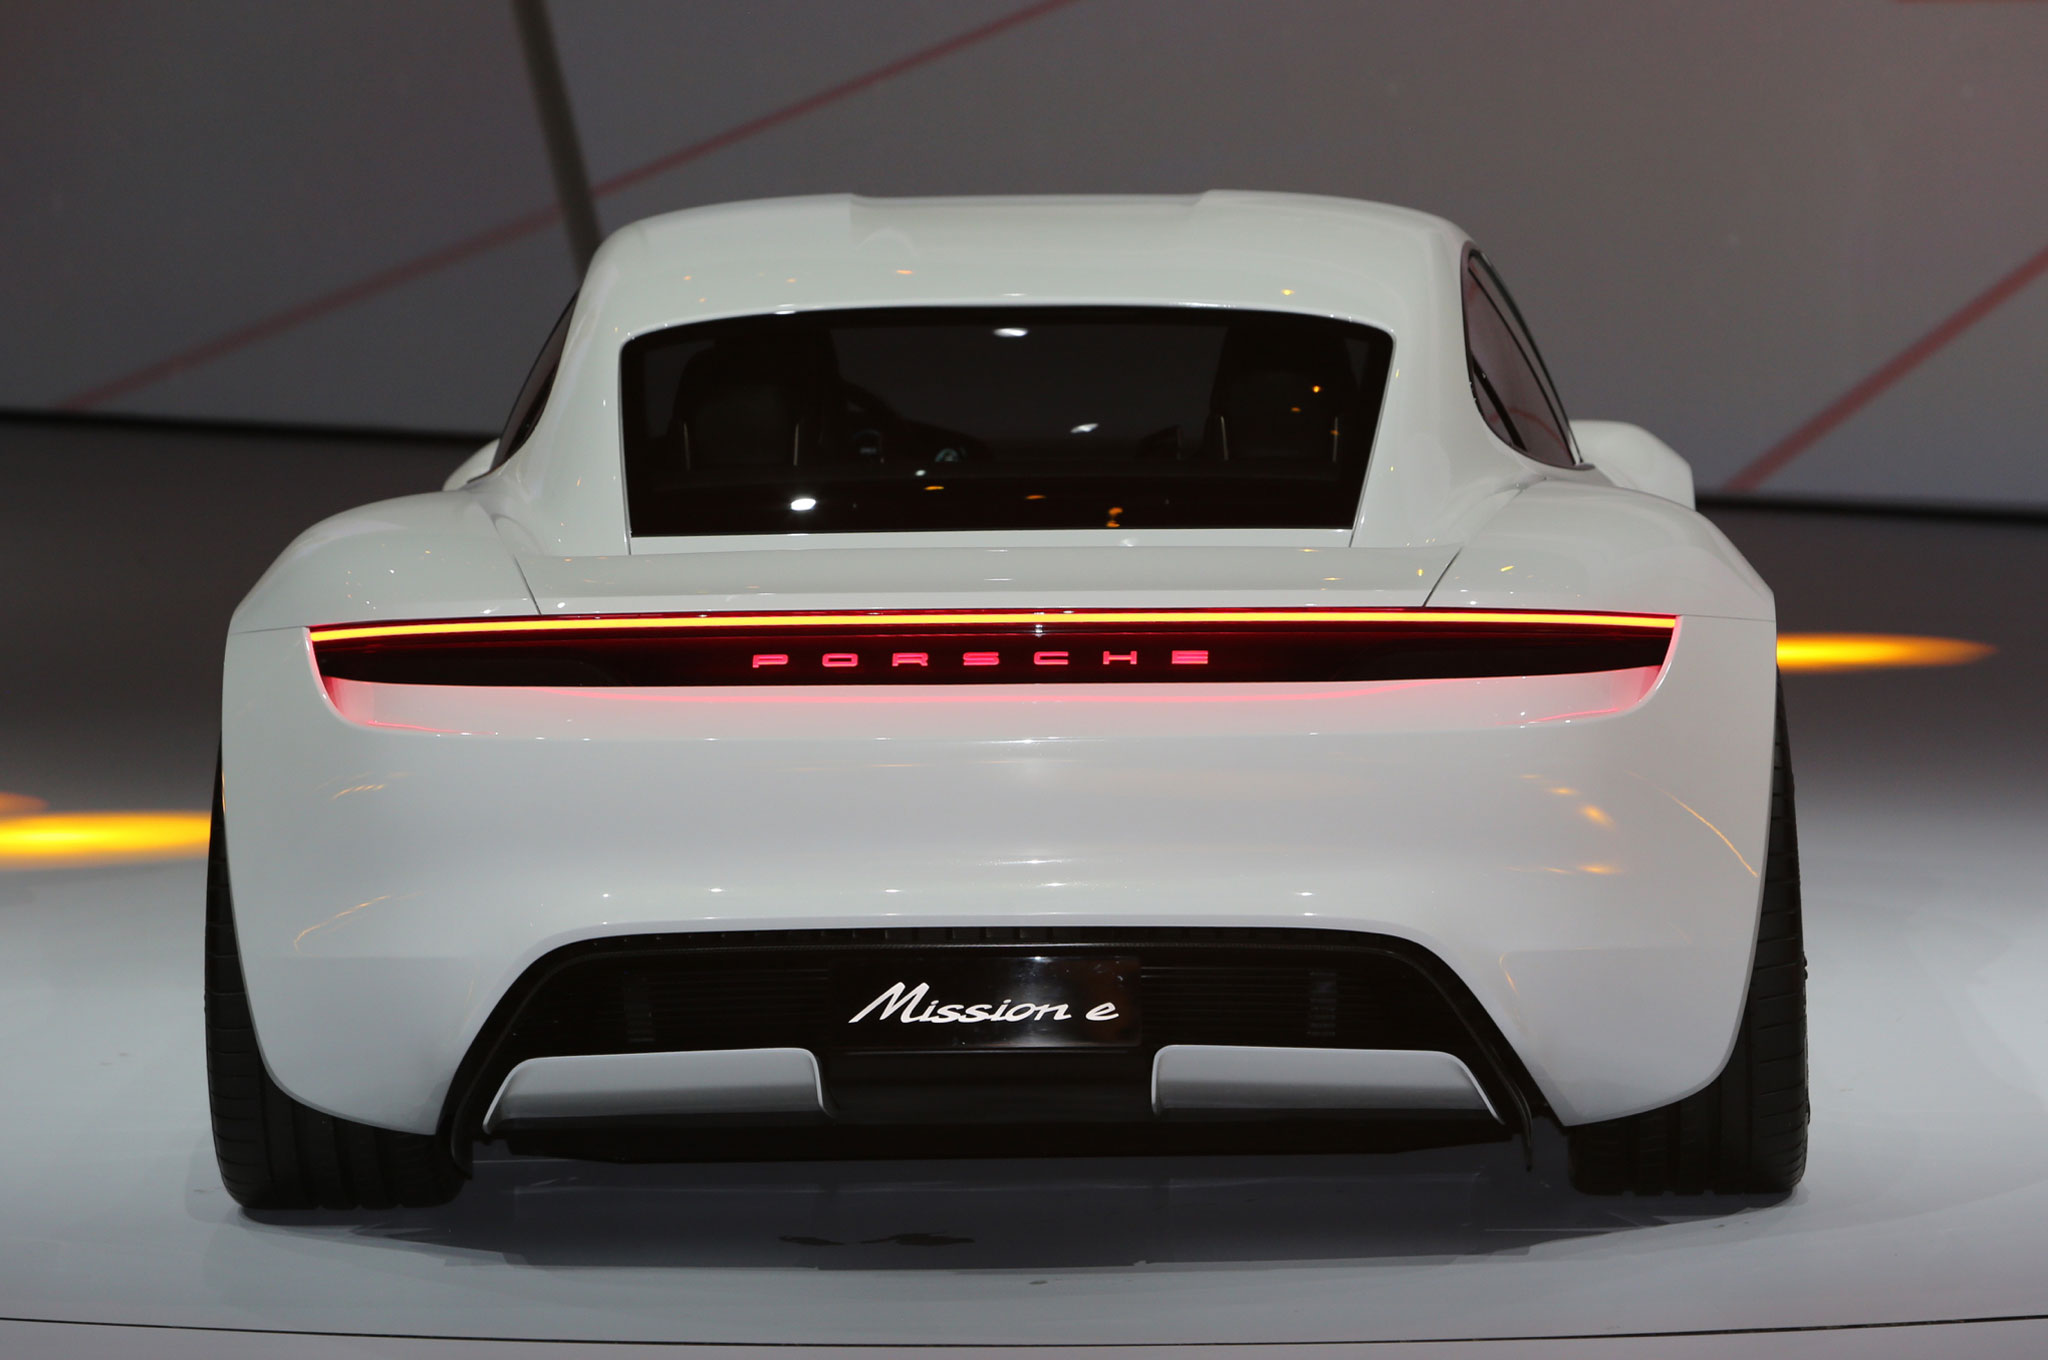 Porsche Confirms Mission E Electric Car Headed To Production